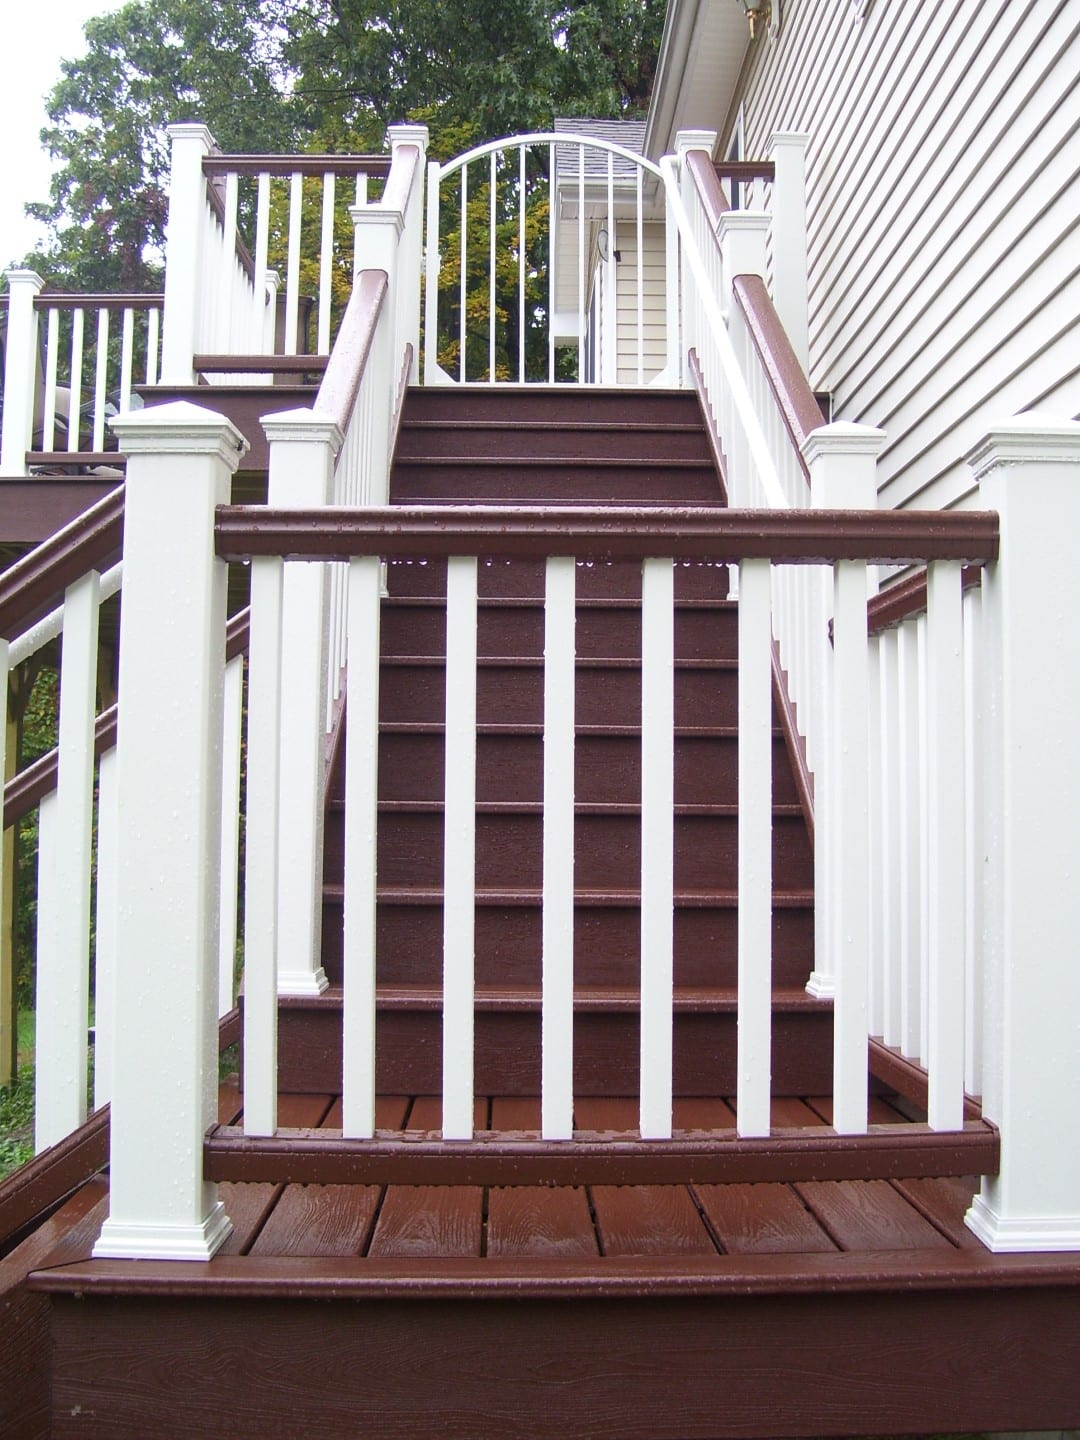 Backyard Deck Builders in Dutchess County, NY - DBS Remodel